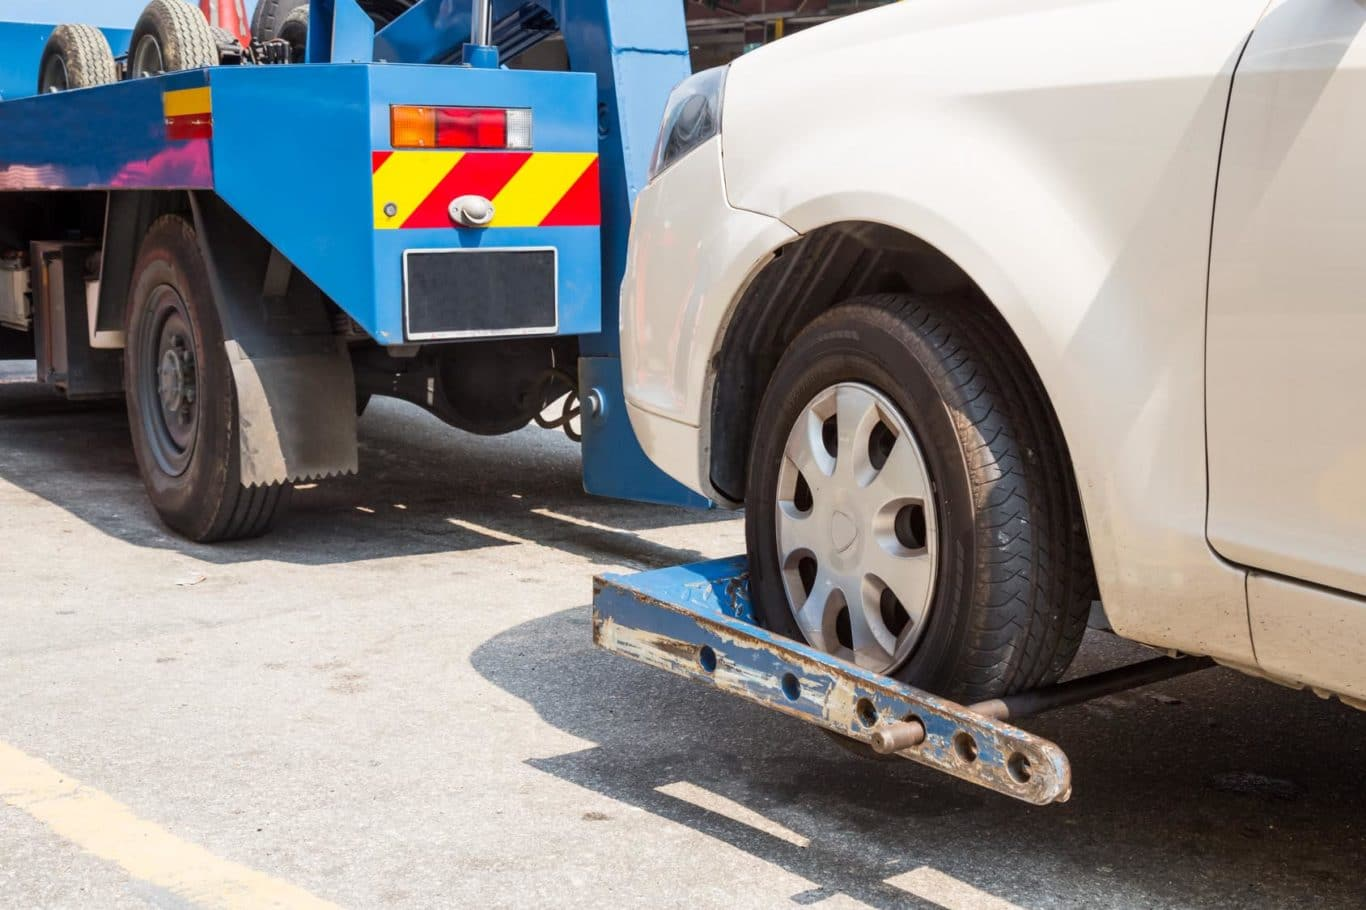 Chapelizod expert Towing And Recovery Dublin services